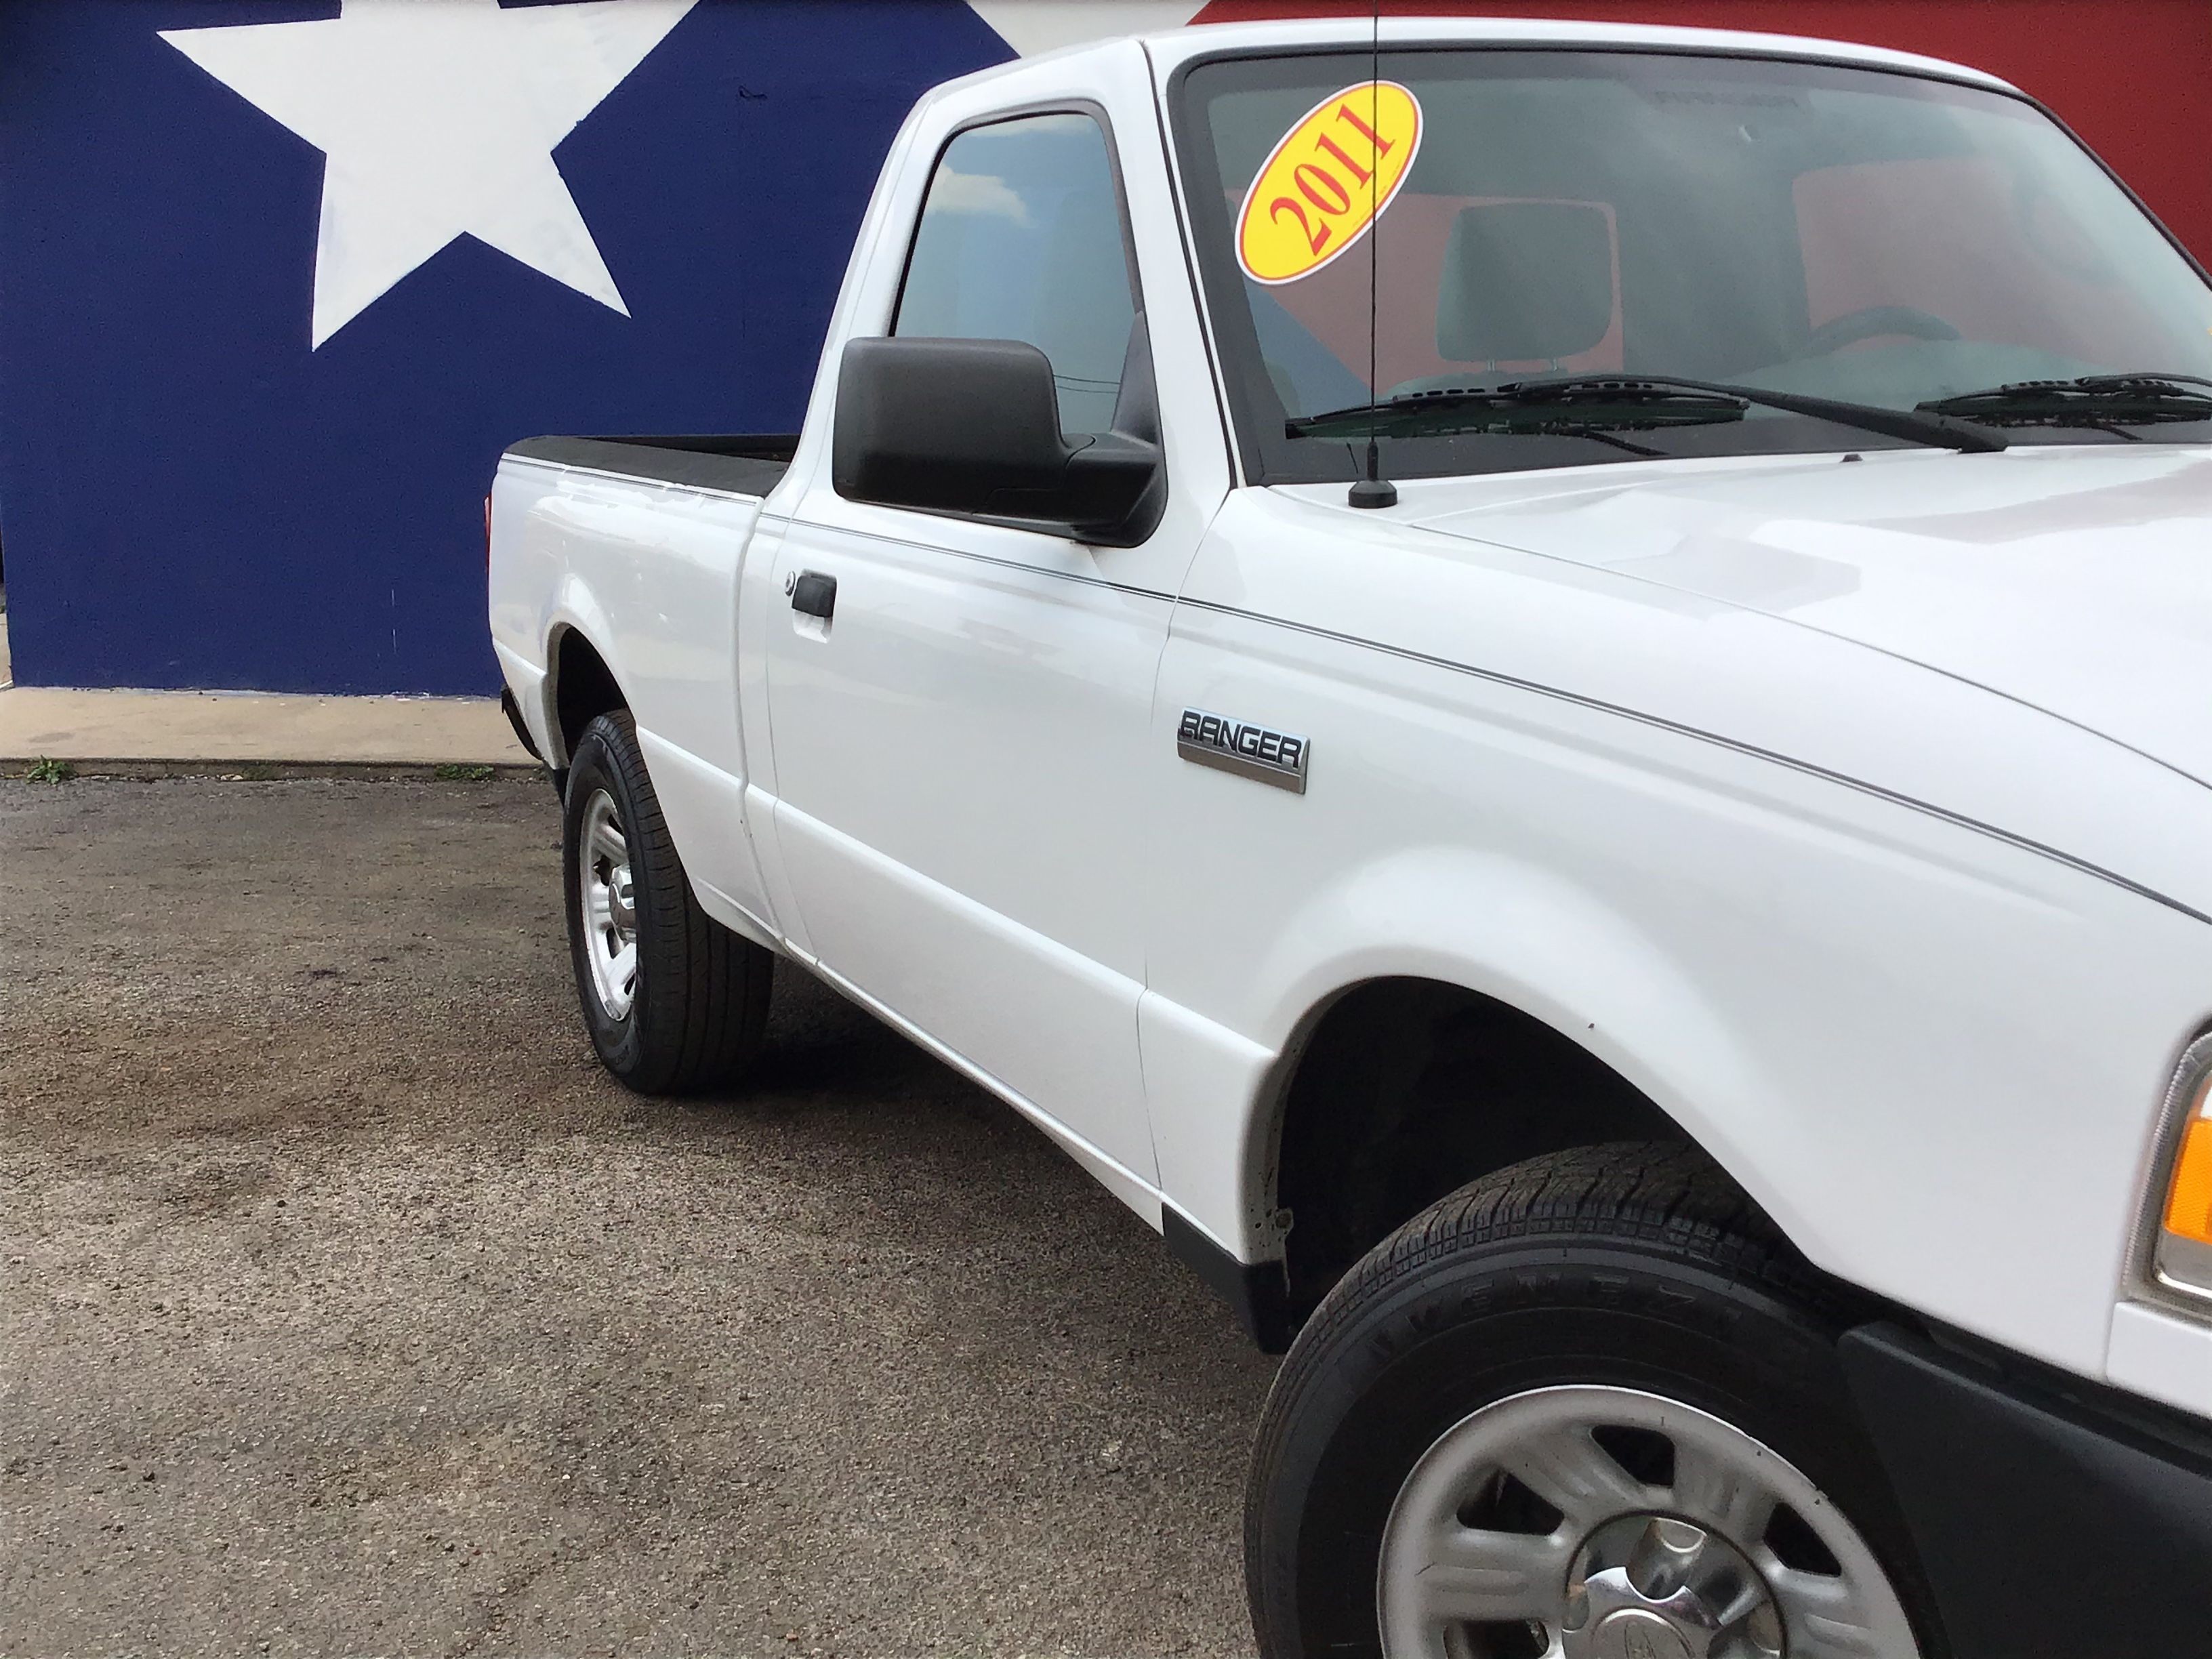 used vehicle - Truck FORD RANGER 2011